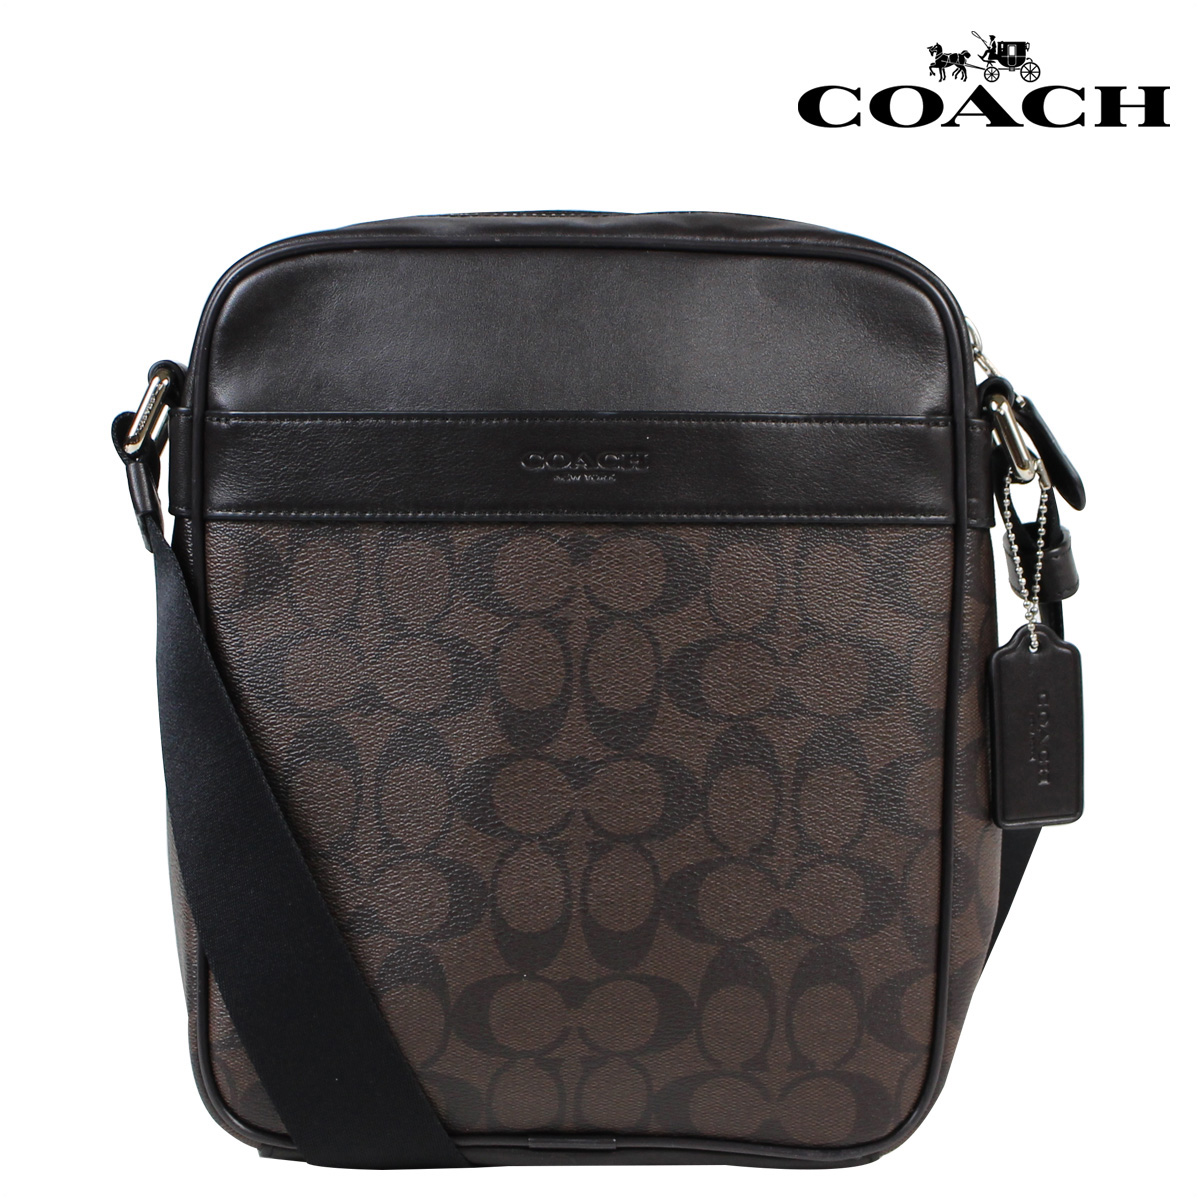 8851c539f9bd1 Handmade bags in the center business and fashion, has established itself as  a world-wide total fashion brand. As